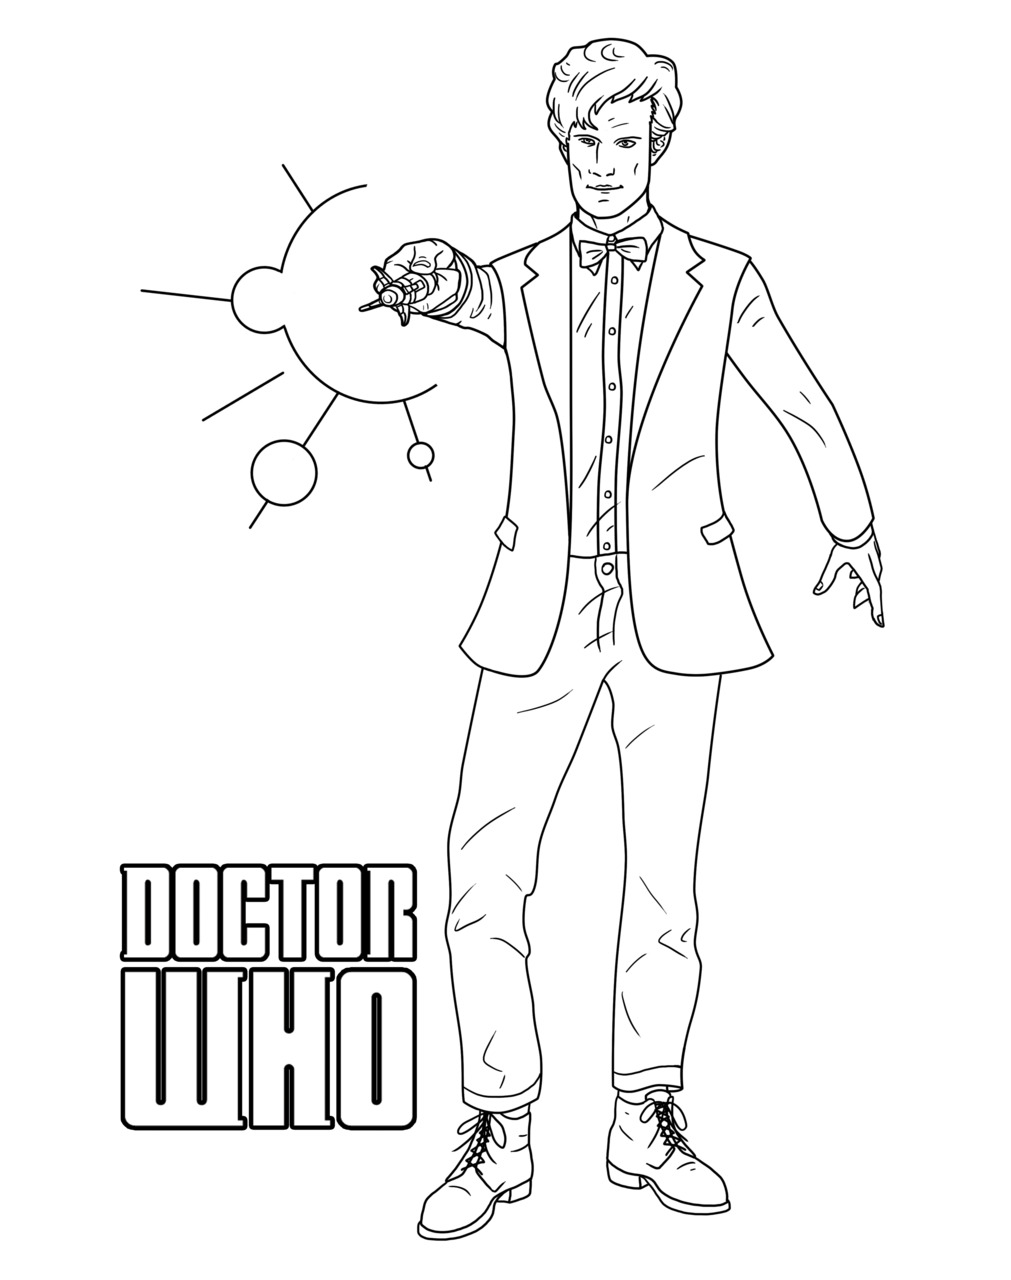 Doctor Who Coloring Pages AZ